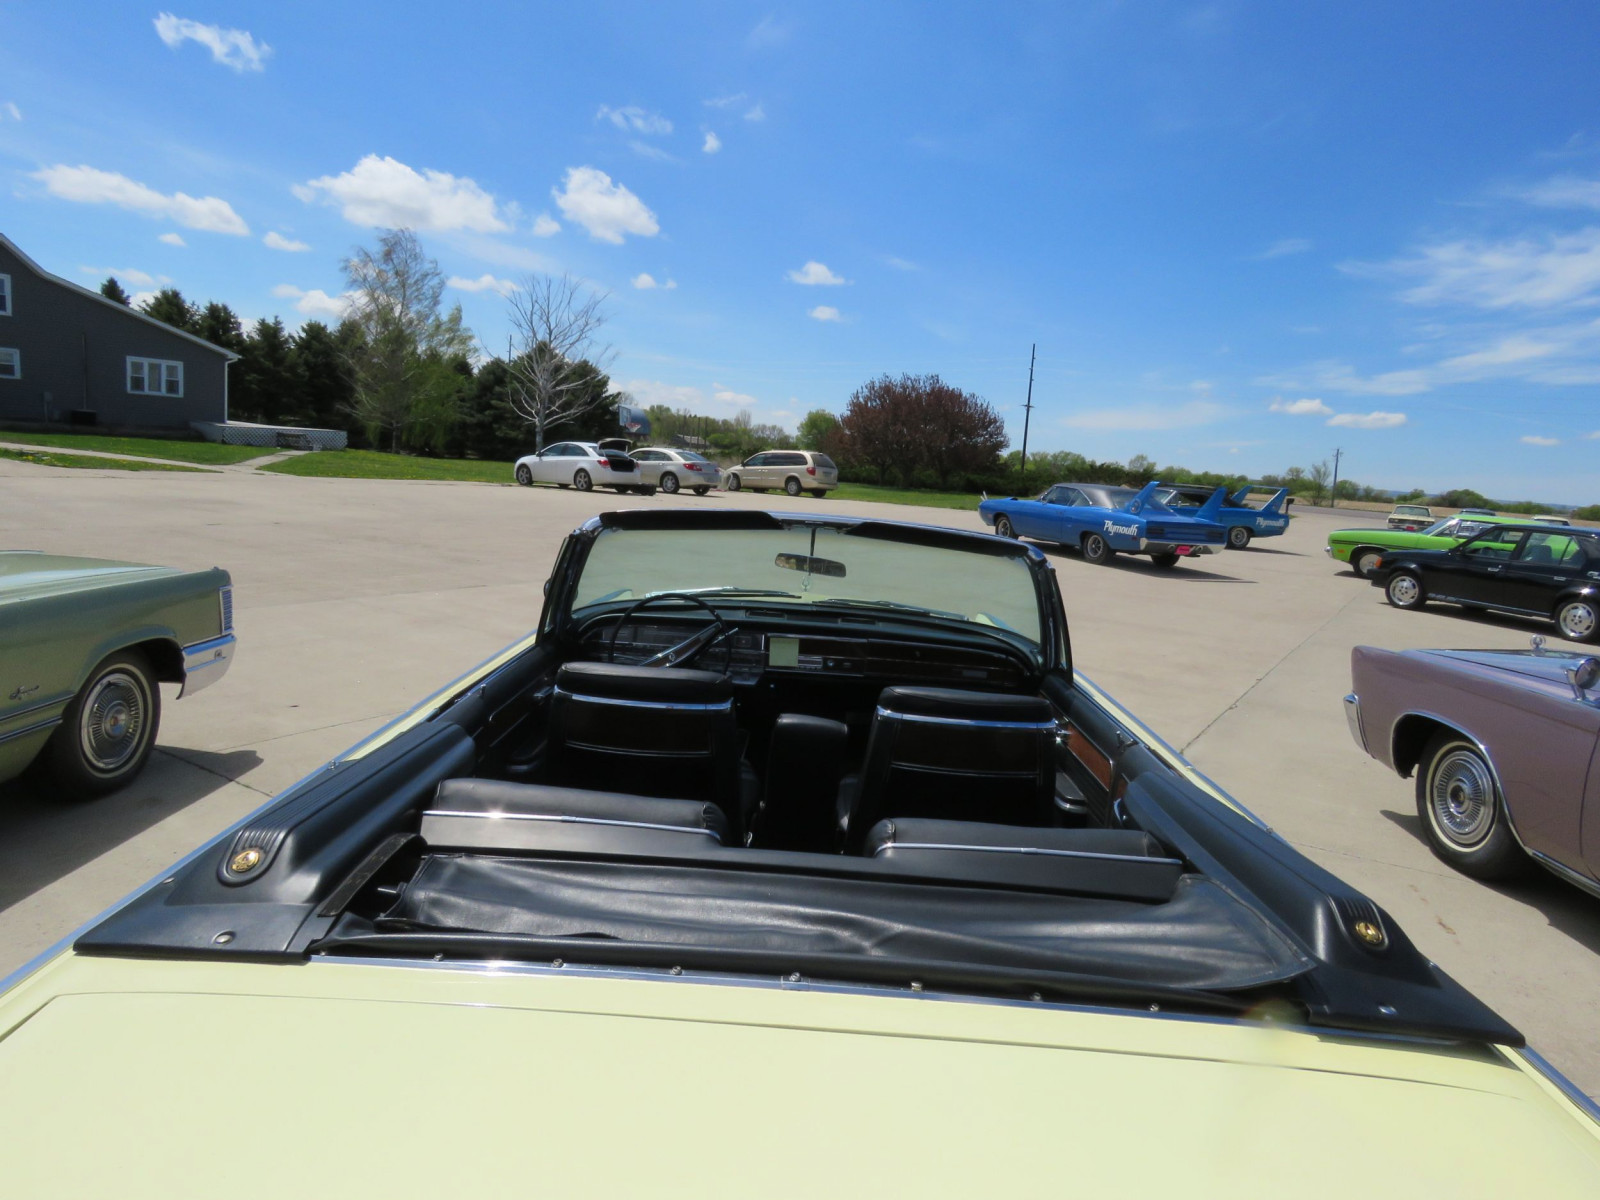 1966 Chrysler Imperial Crown Convertible - Image 7